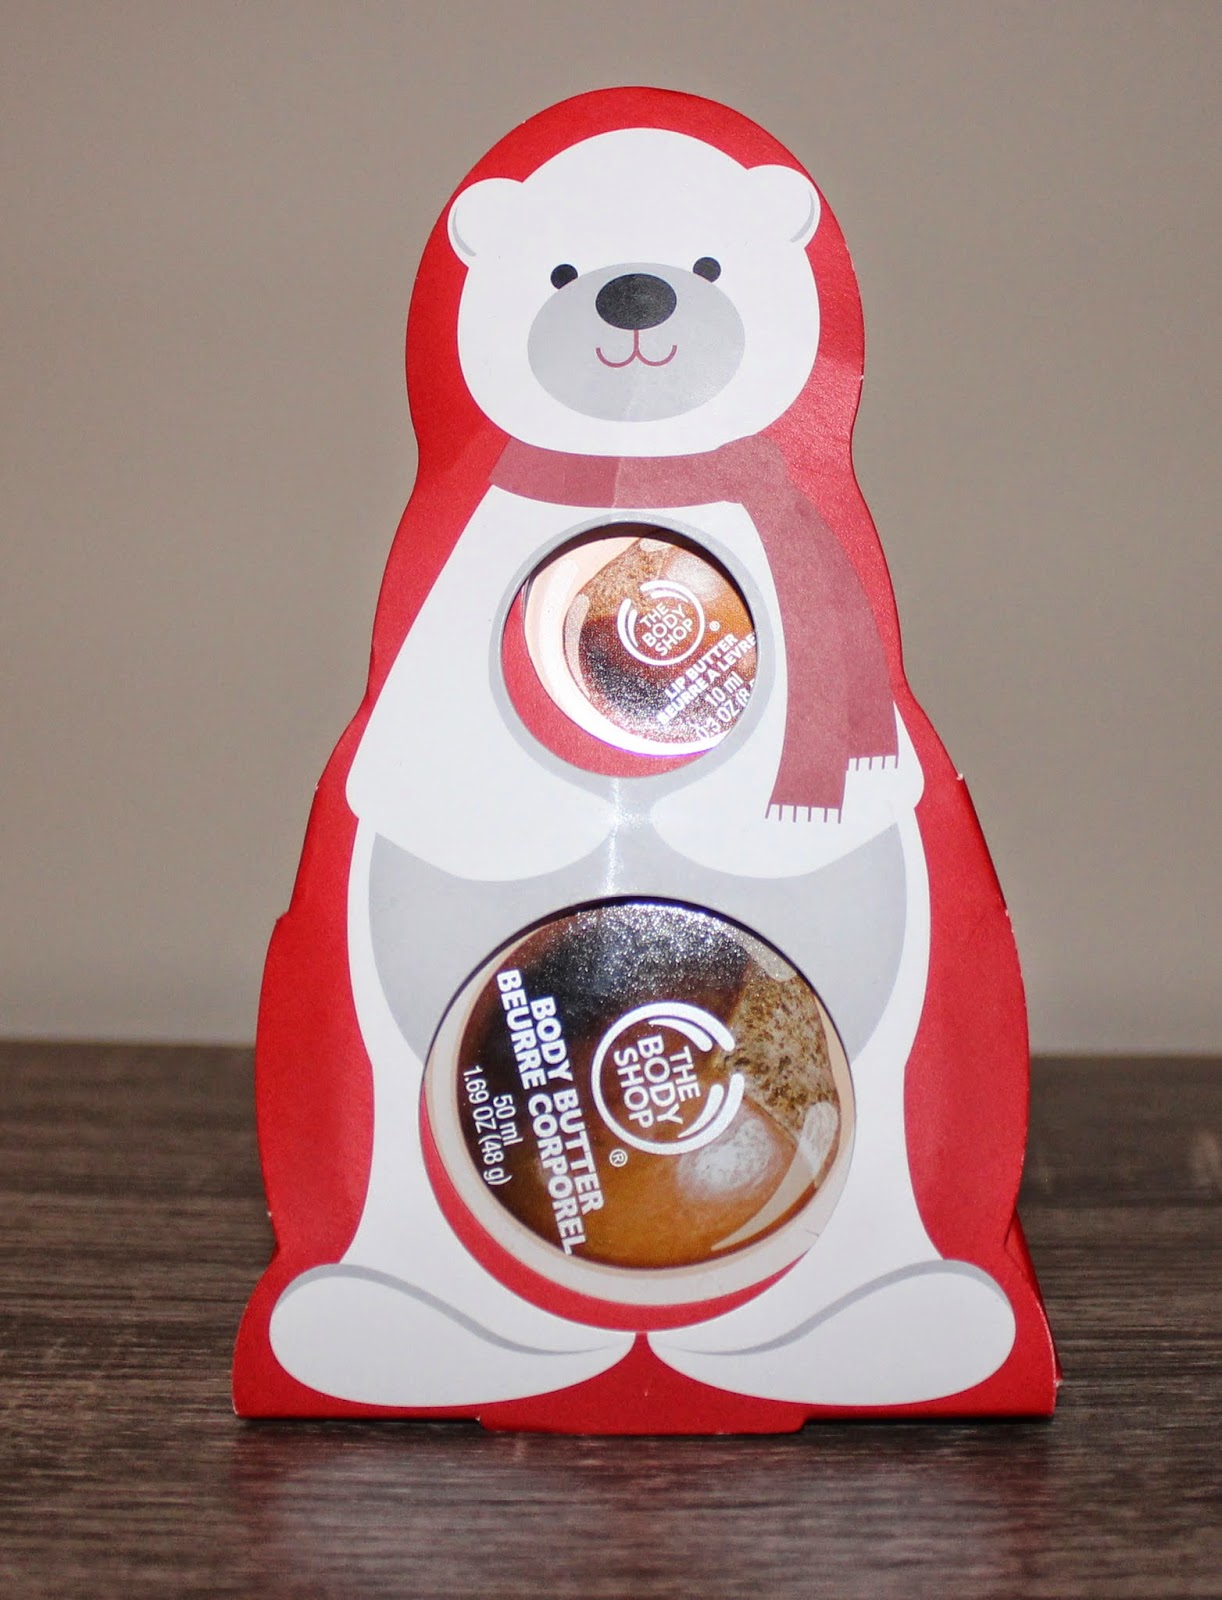 The Body Shop's The Nutty Polar Bear